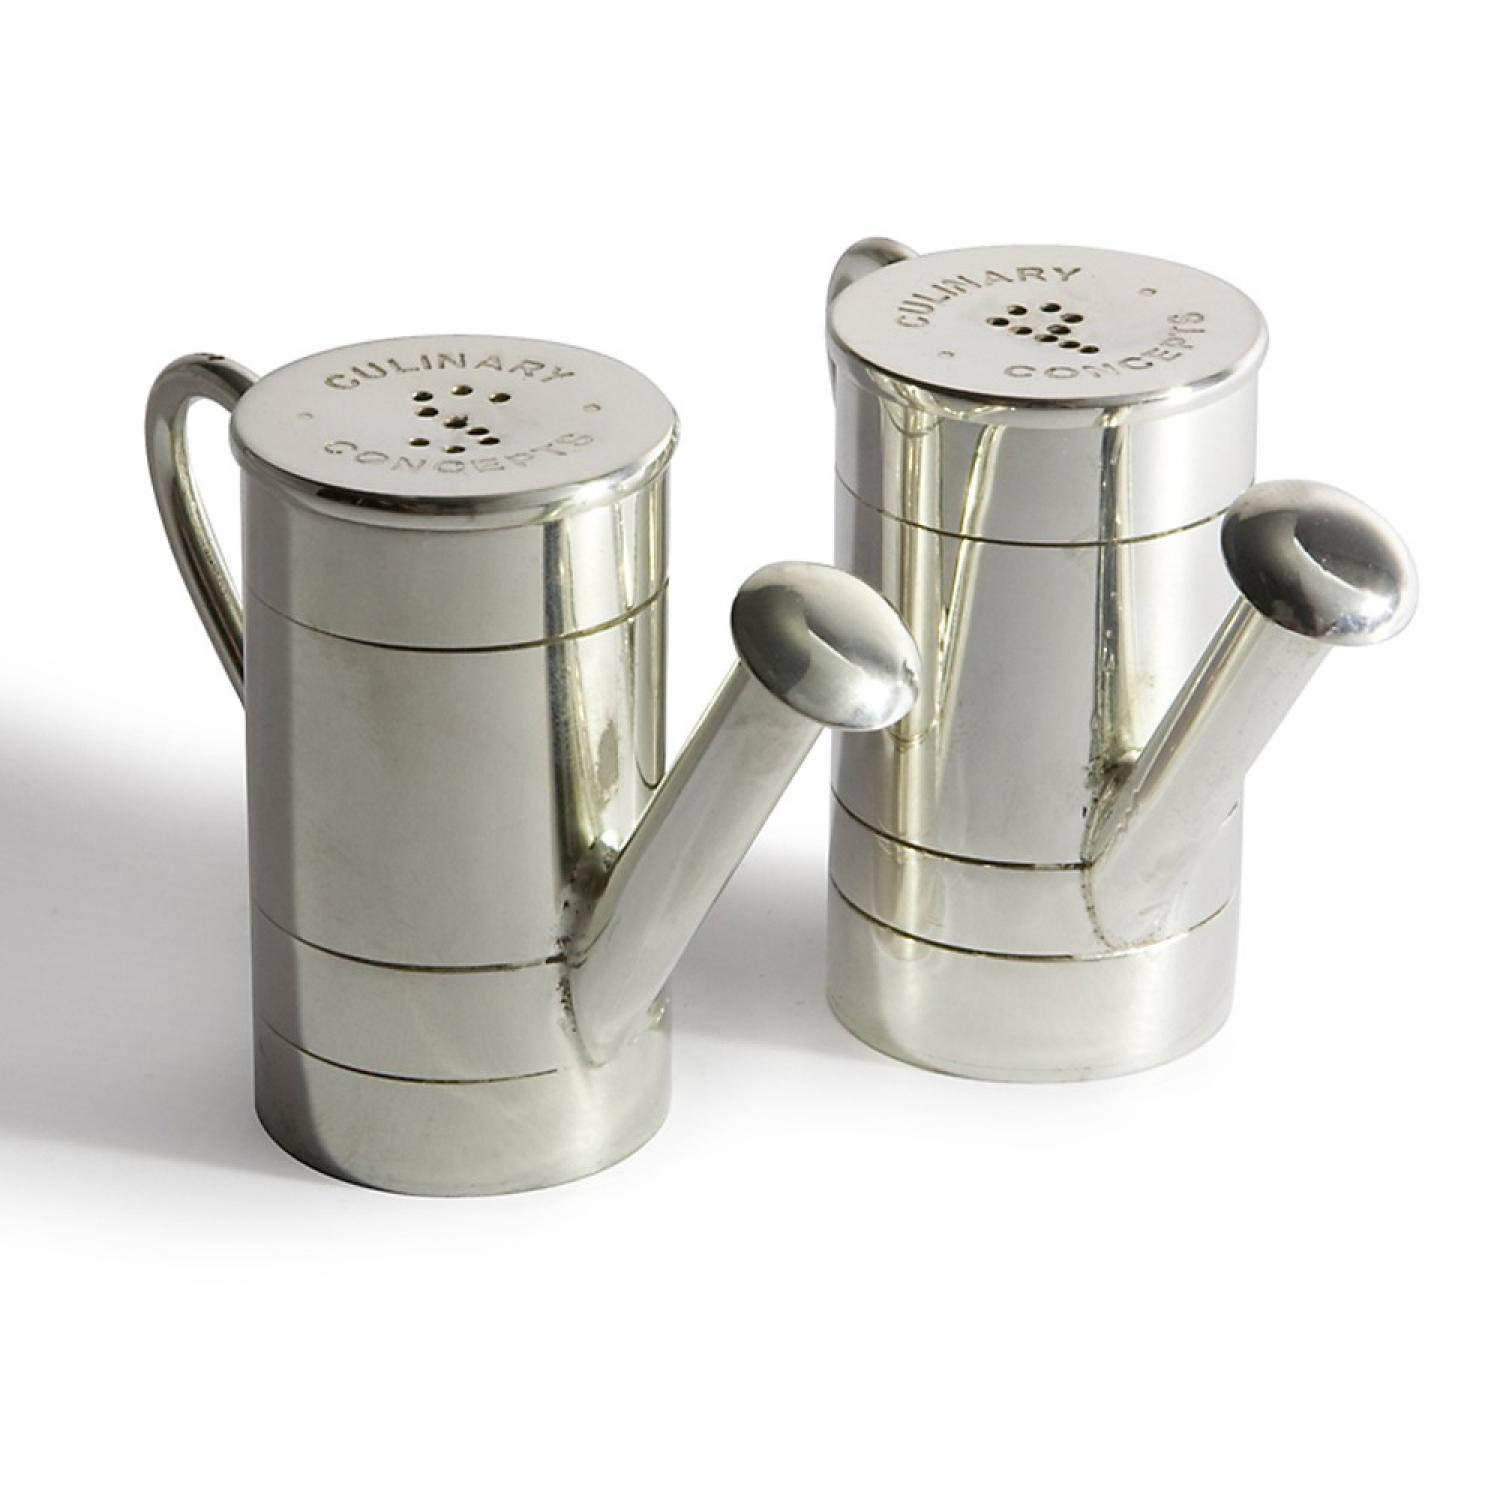 Watering can cruet set